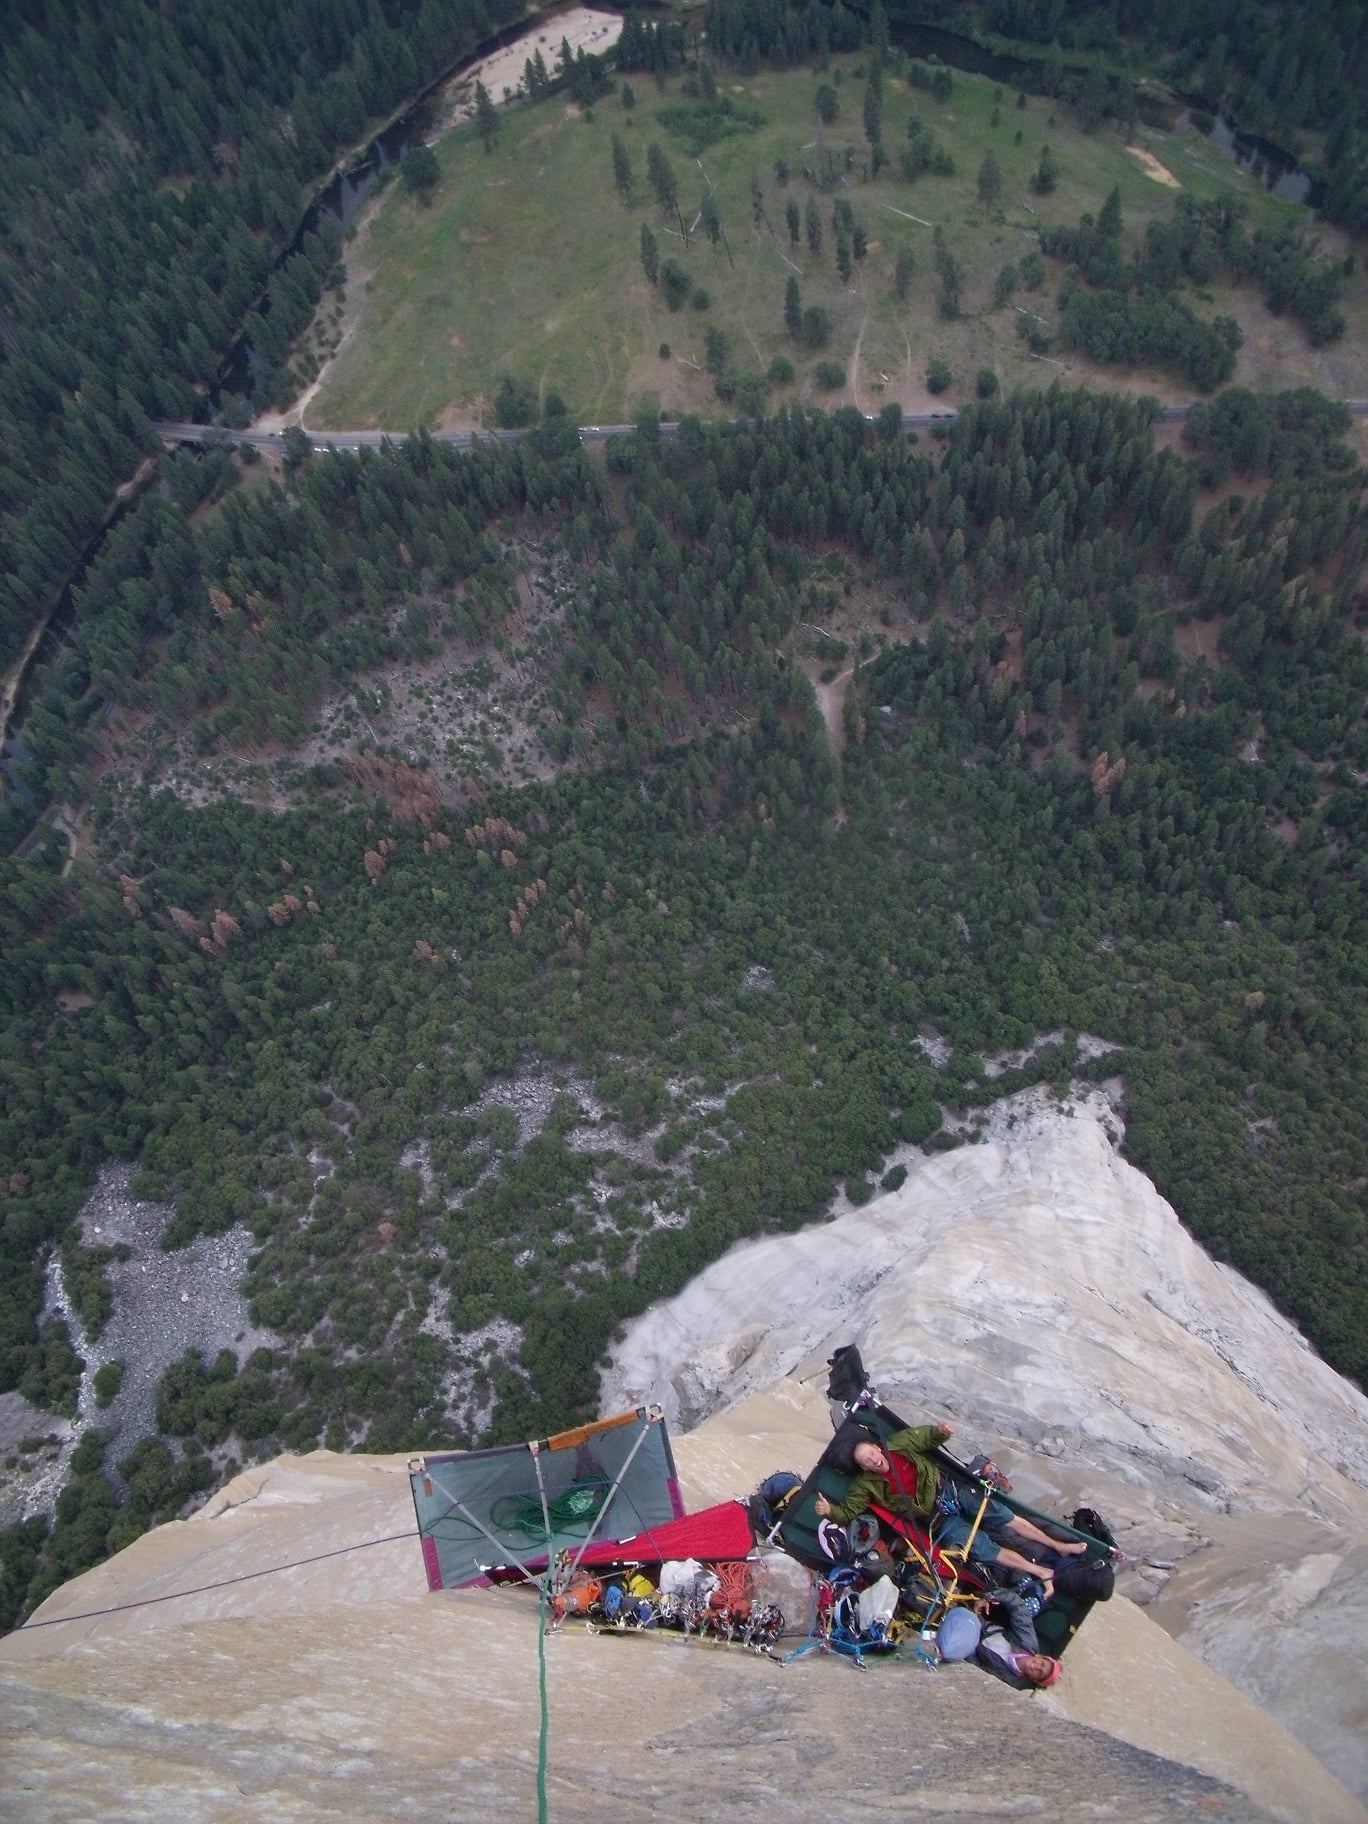 Zabrok and partners enjoying an El Cap route in style. [Photo] Peter Zabrok